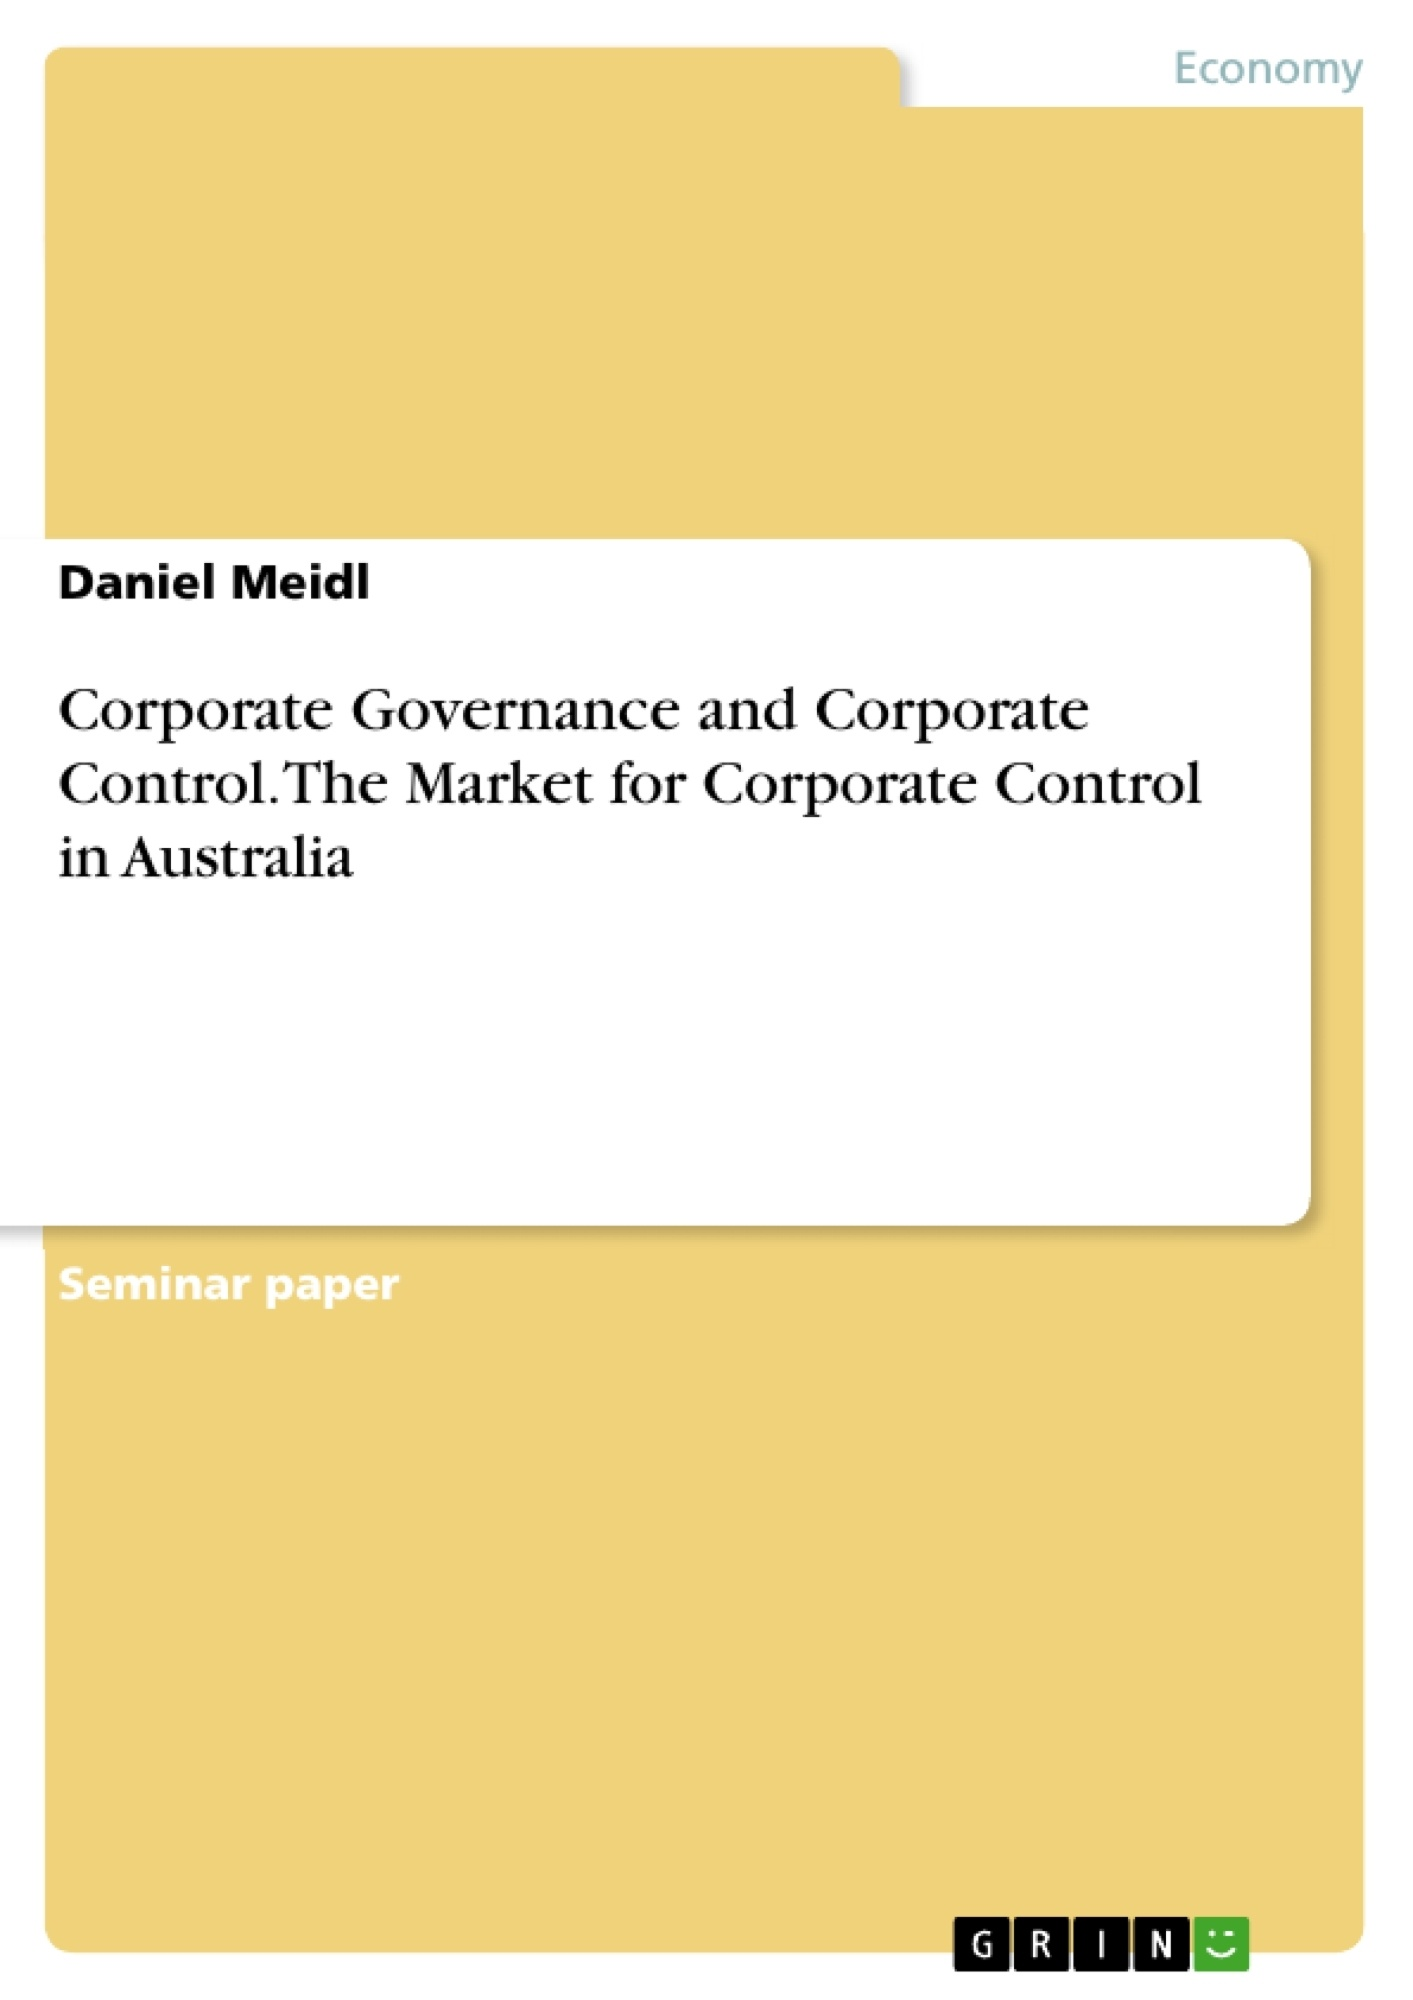 thesis of corporate management